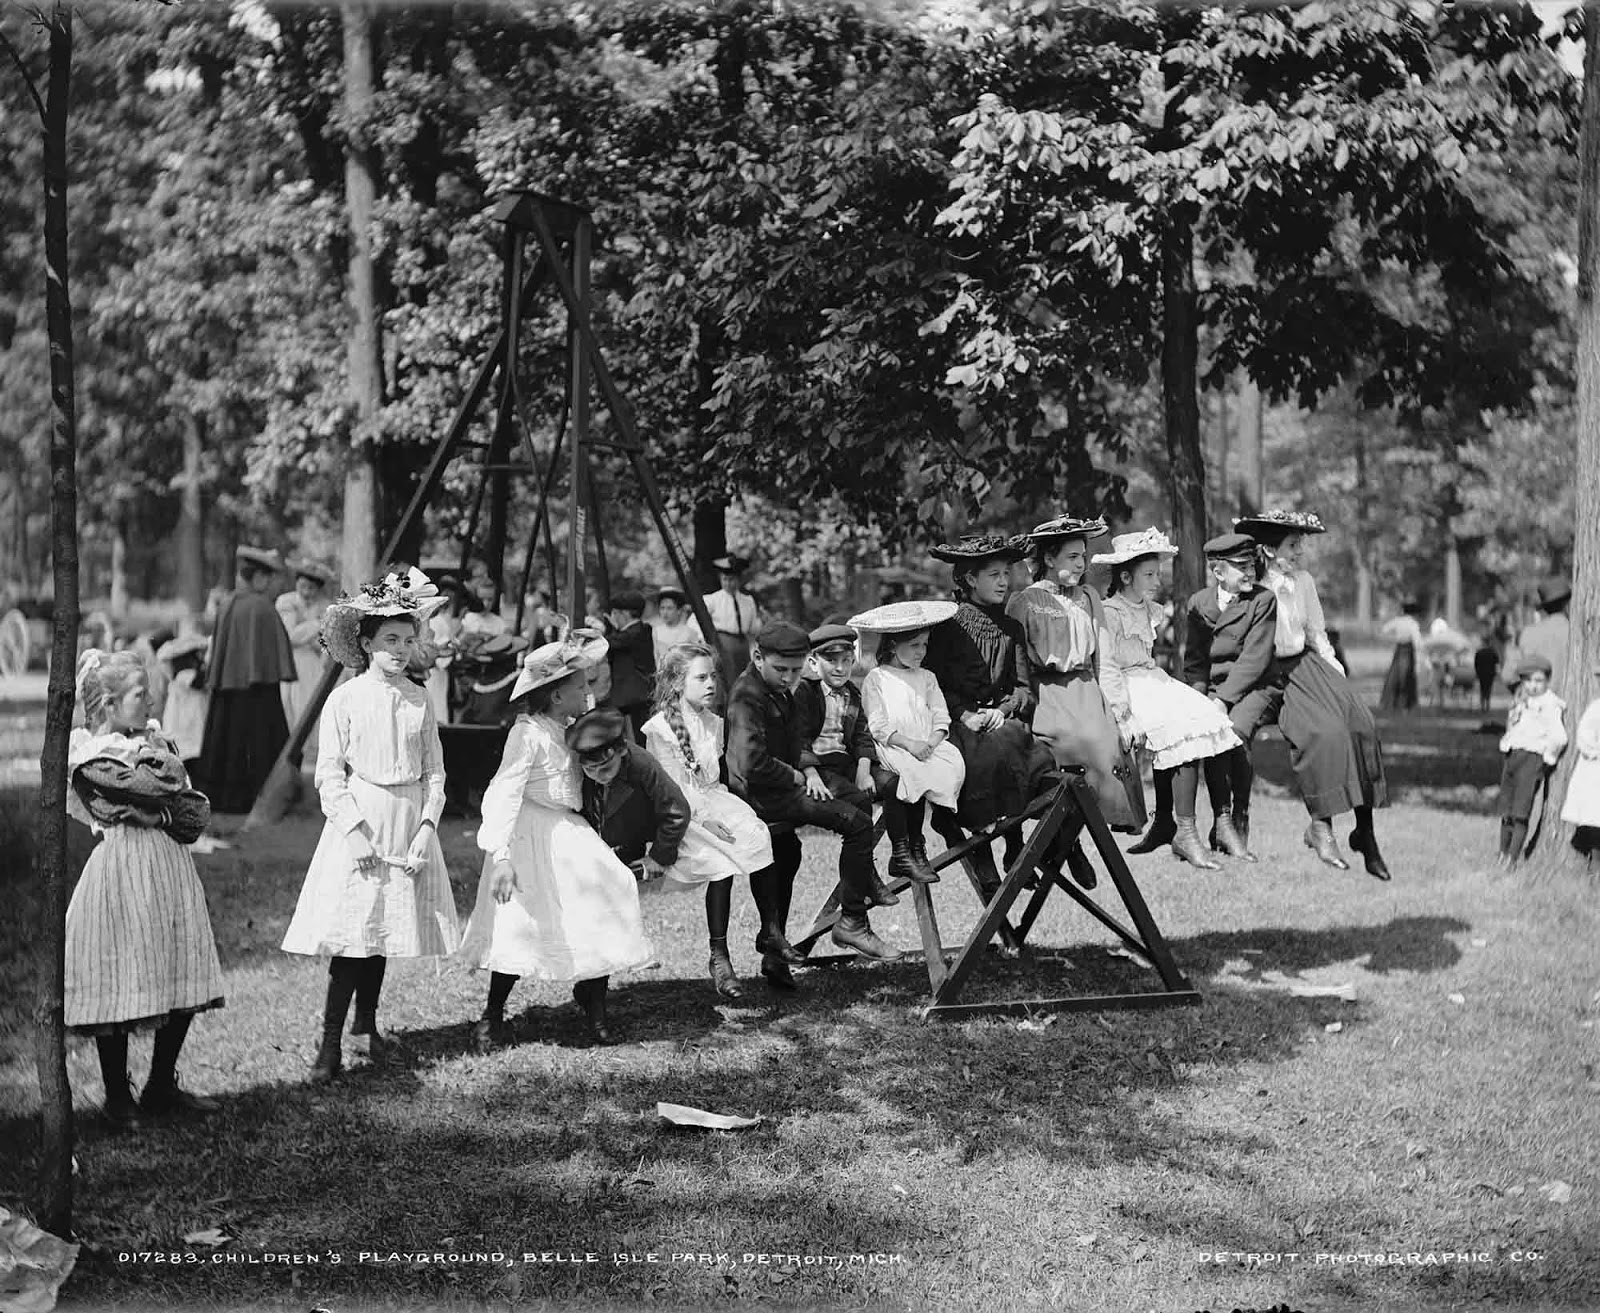 Children's playground, Belle Isle Park, Detroit, Mich. 1900-1905.